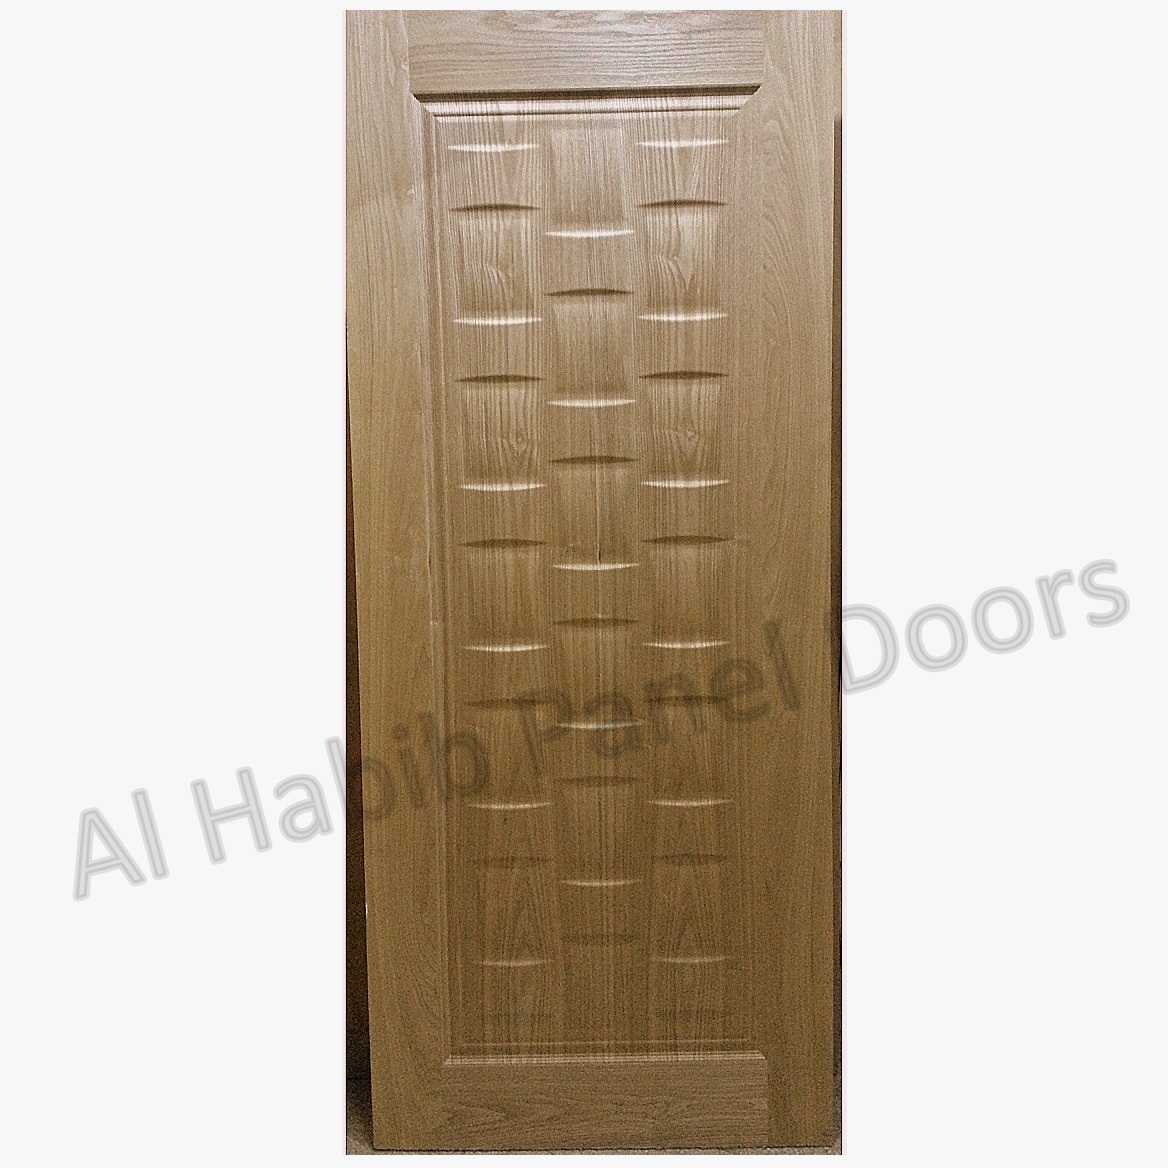 room door designs. ash skin door chitai design room designs c & Room Door Designs. Natural Veneered Wooden Flush Door Design Mdf ...